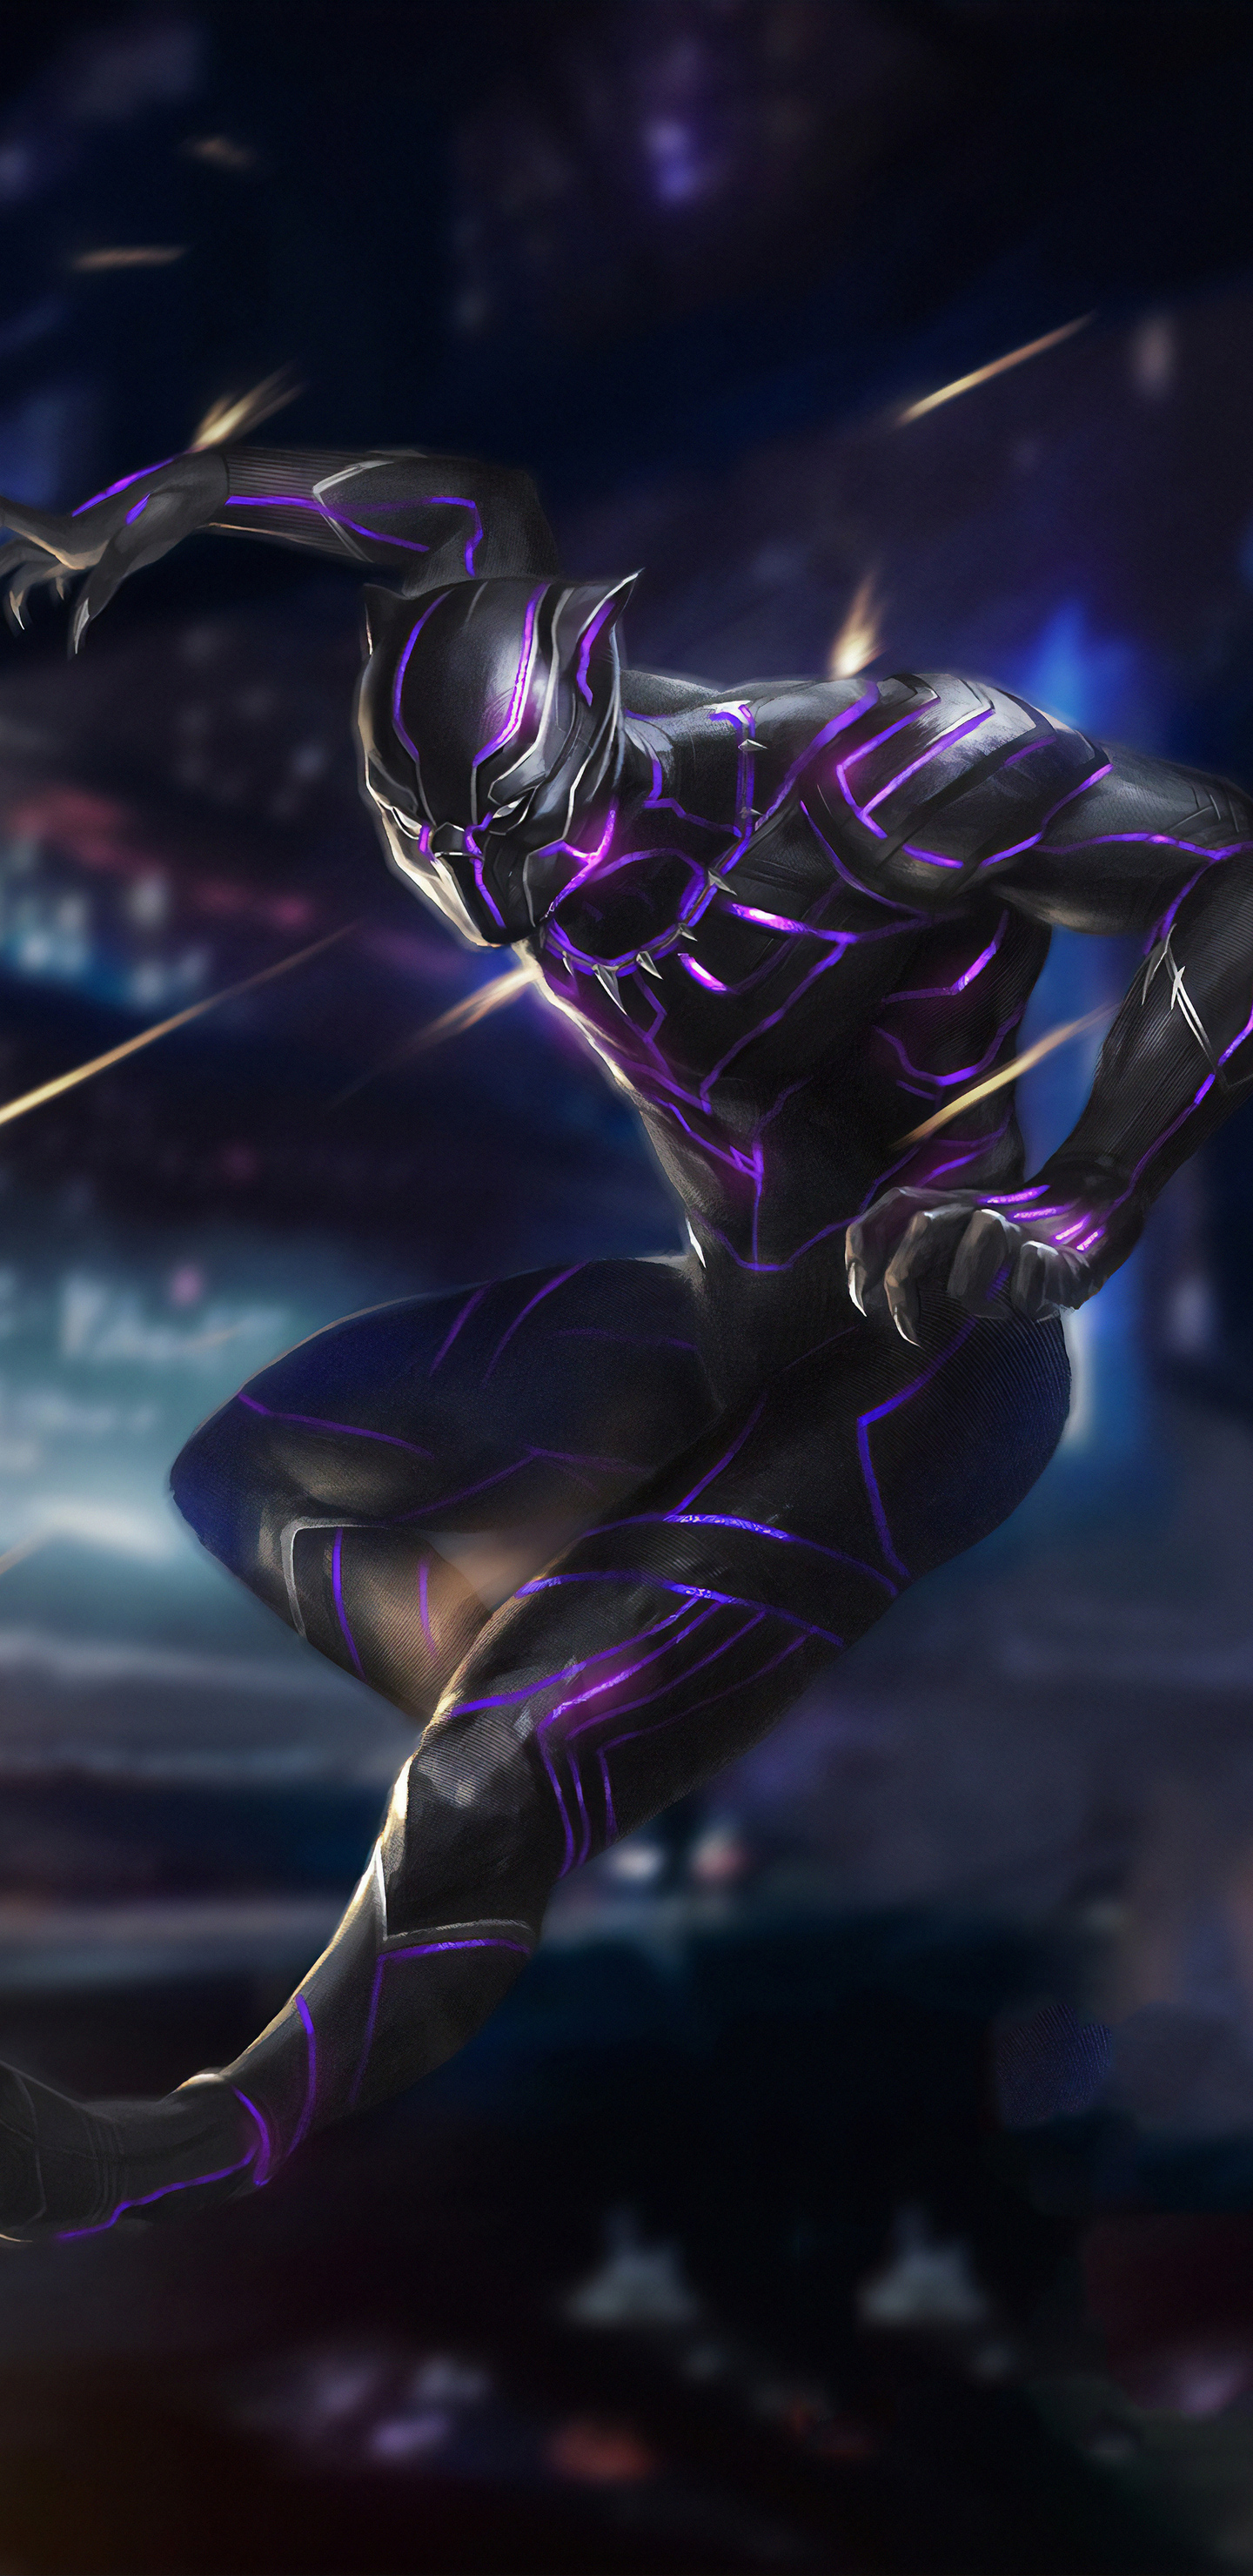 1440x2960 Black Panther 4k New Samsung Galaxy Note 98 S9